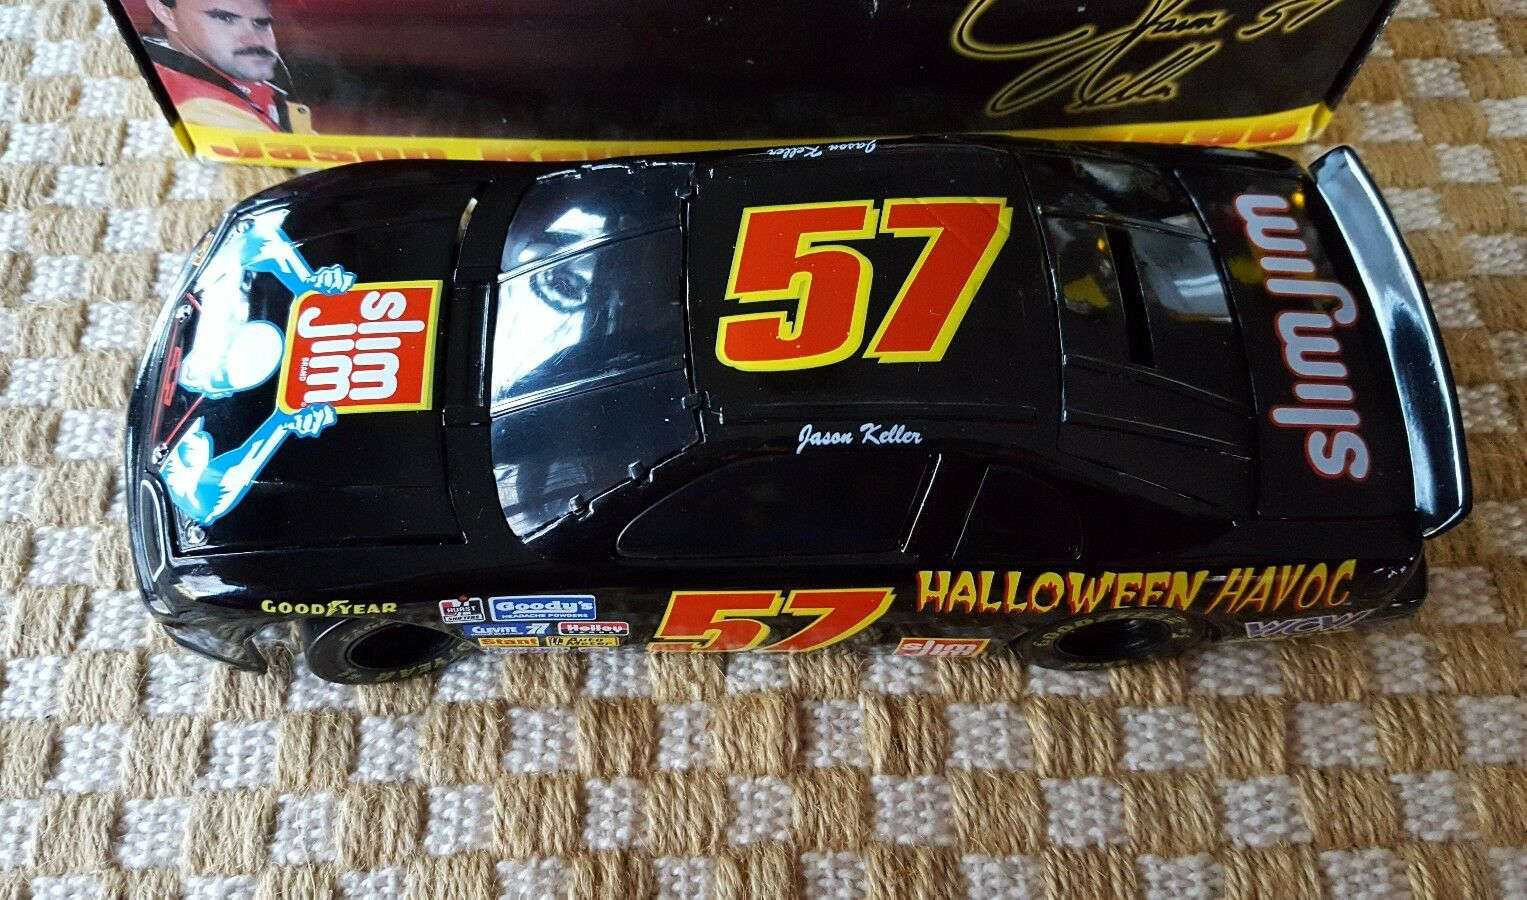 1 24 SCALE ACTION JASON KELLER SLIM JIM   HALLOWEEN HAVOC MONTE CARLO